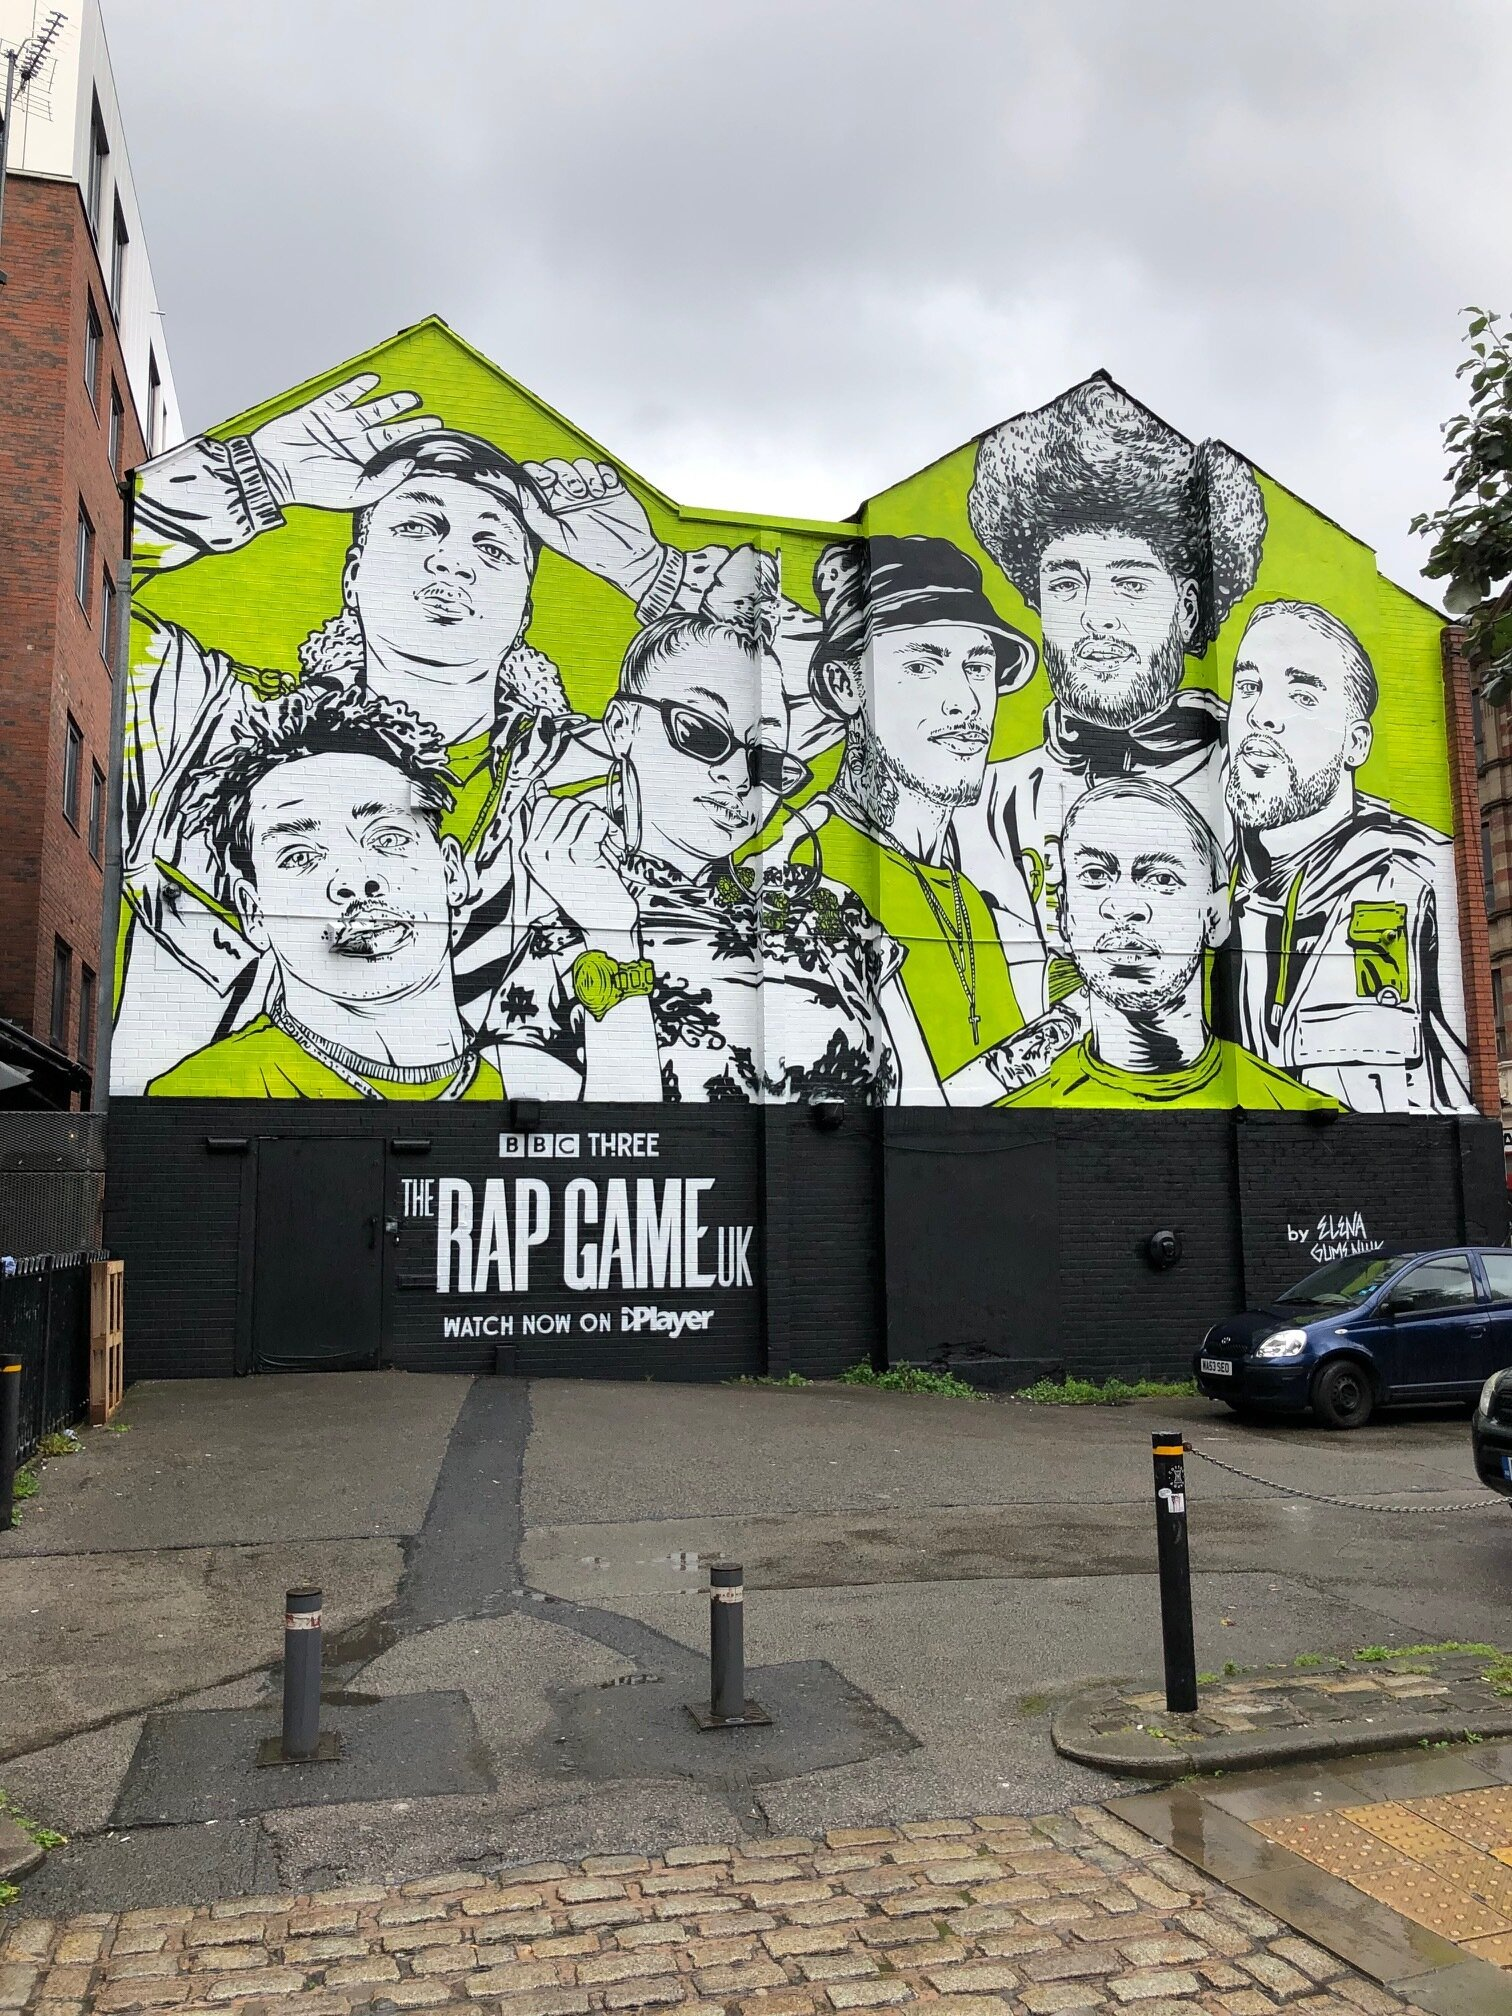 Elena Gumeniuk for BBC The Rap Game UK - Painted wall mural in Manchester, UK.